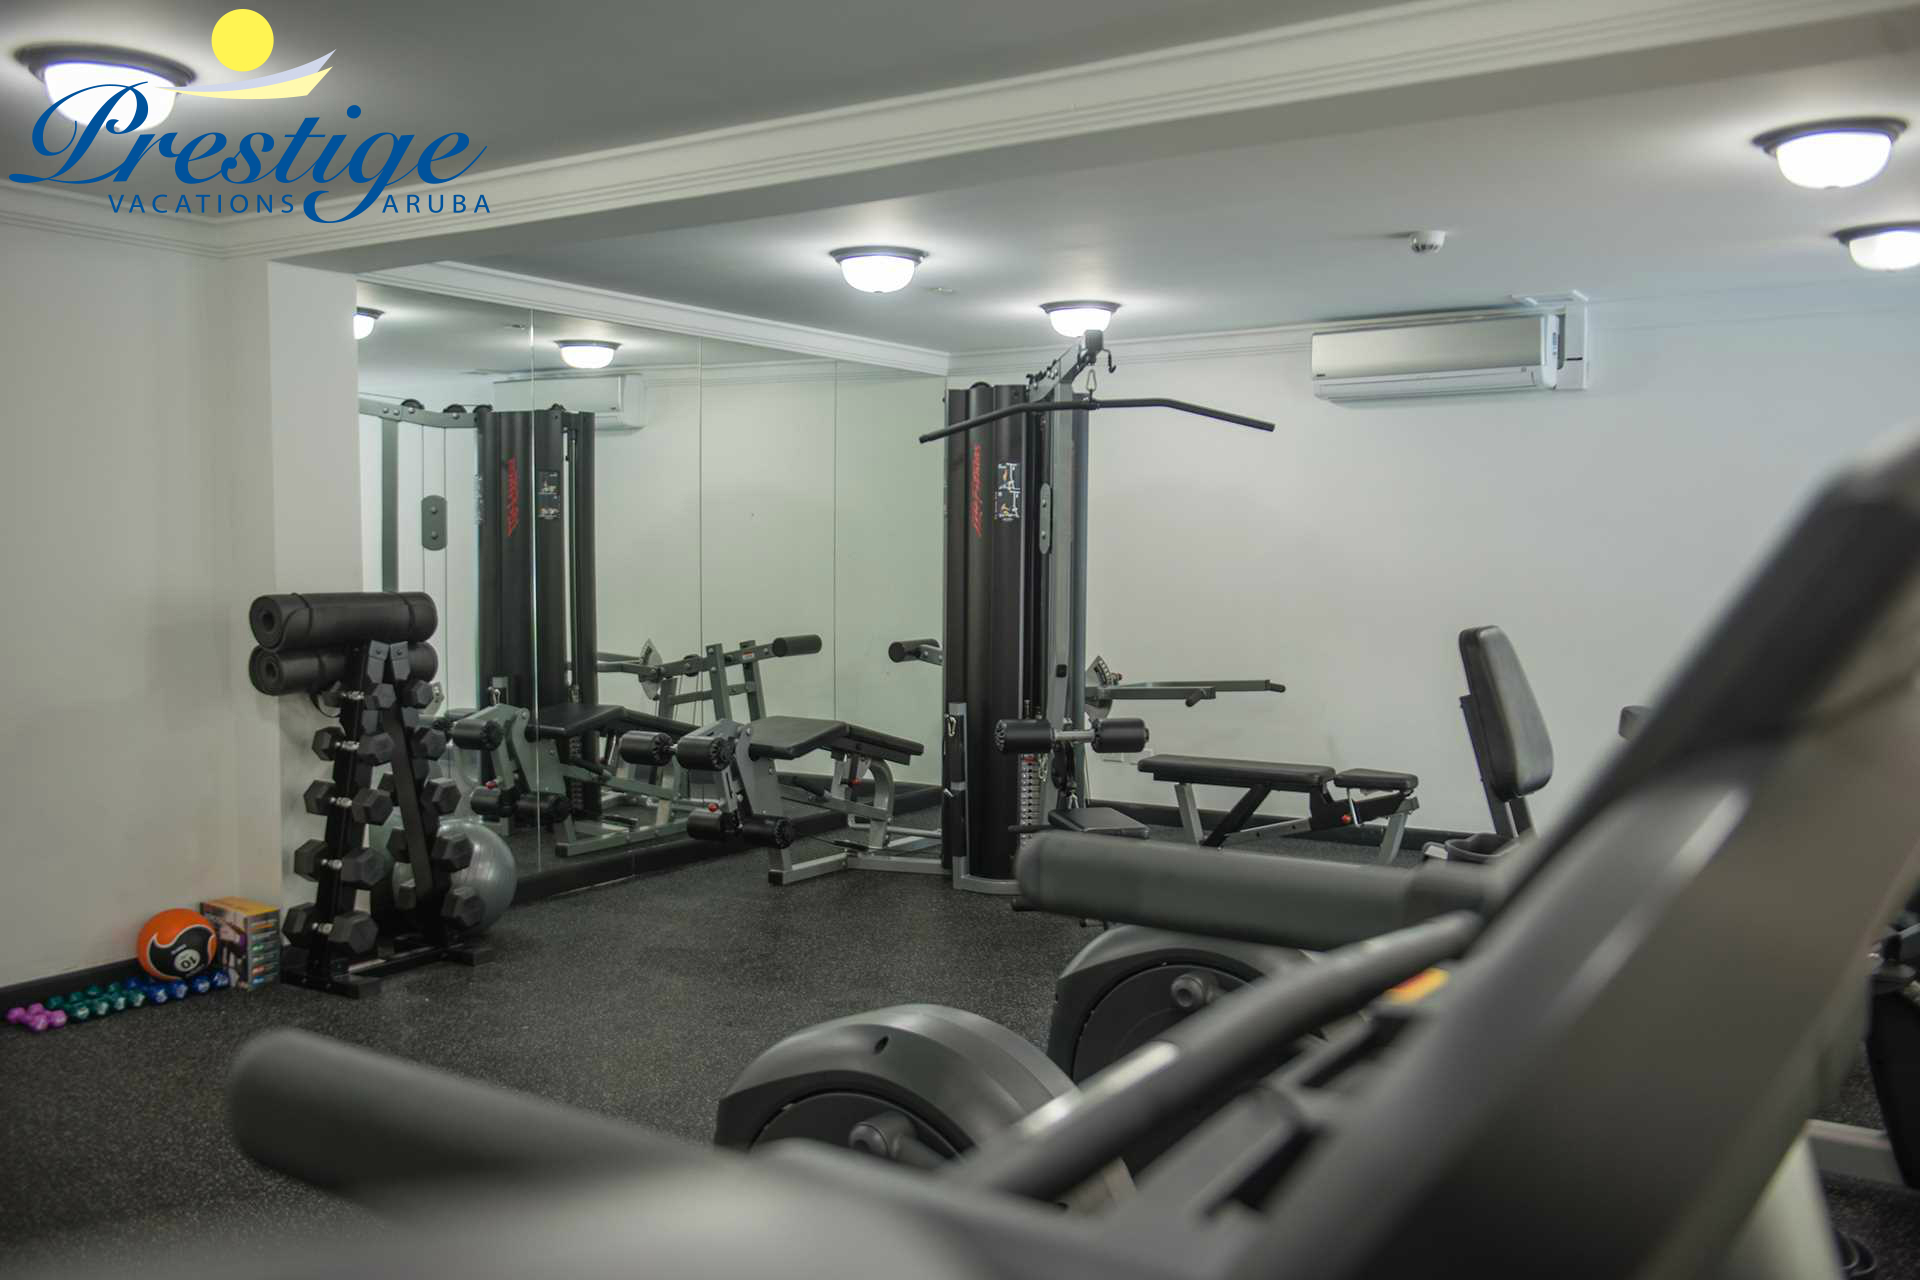 Free use of the Full Air Conditioned Fitness Center for all guests